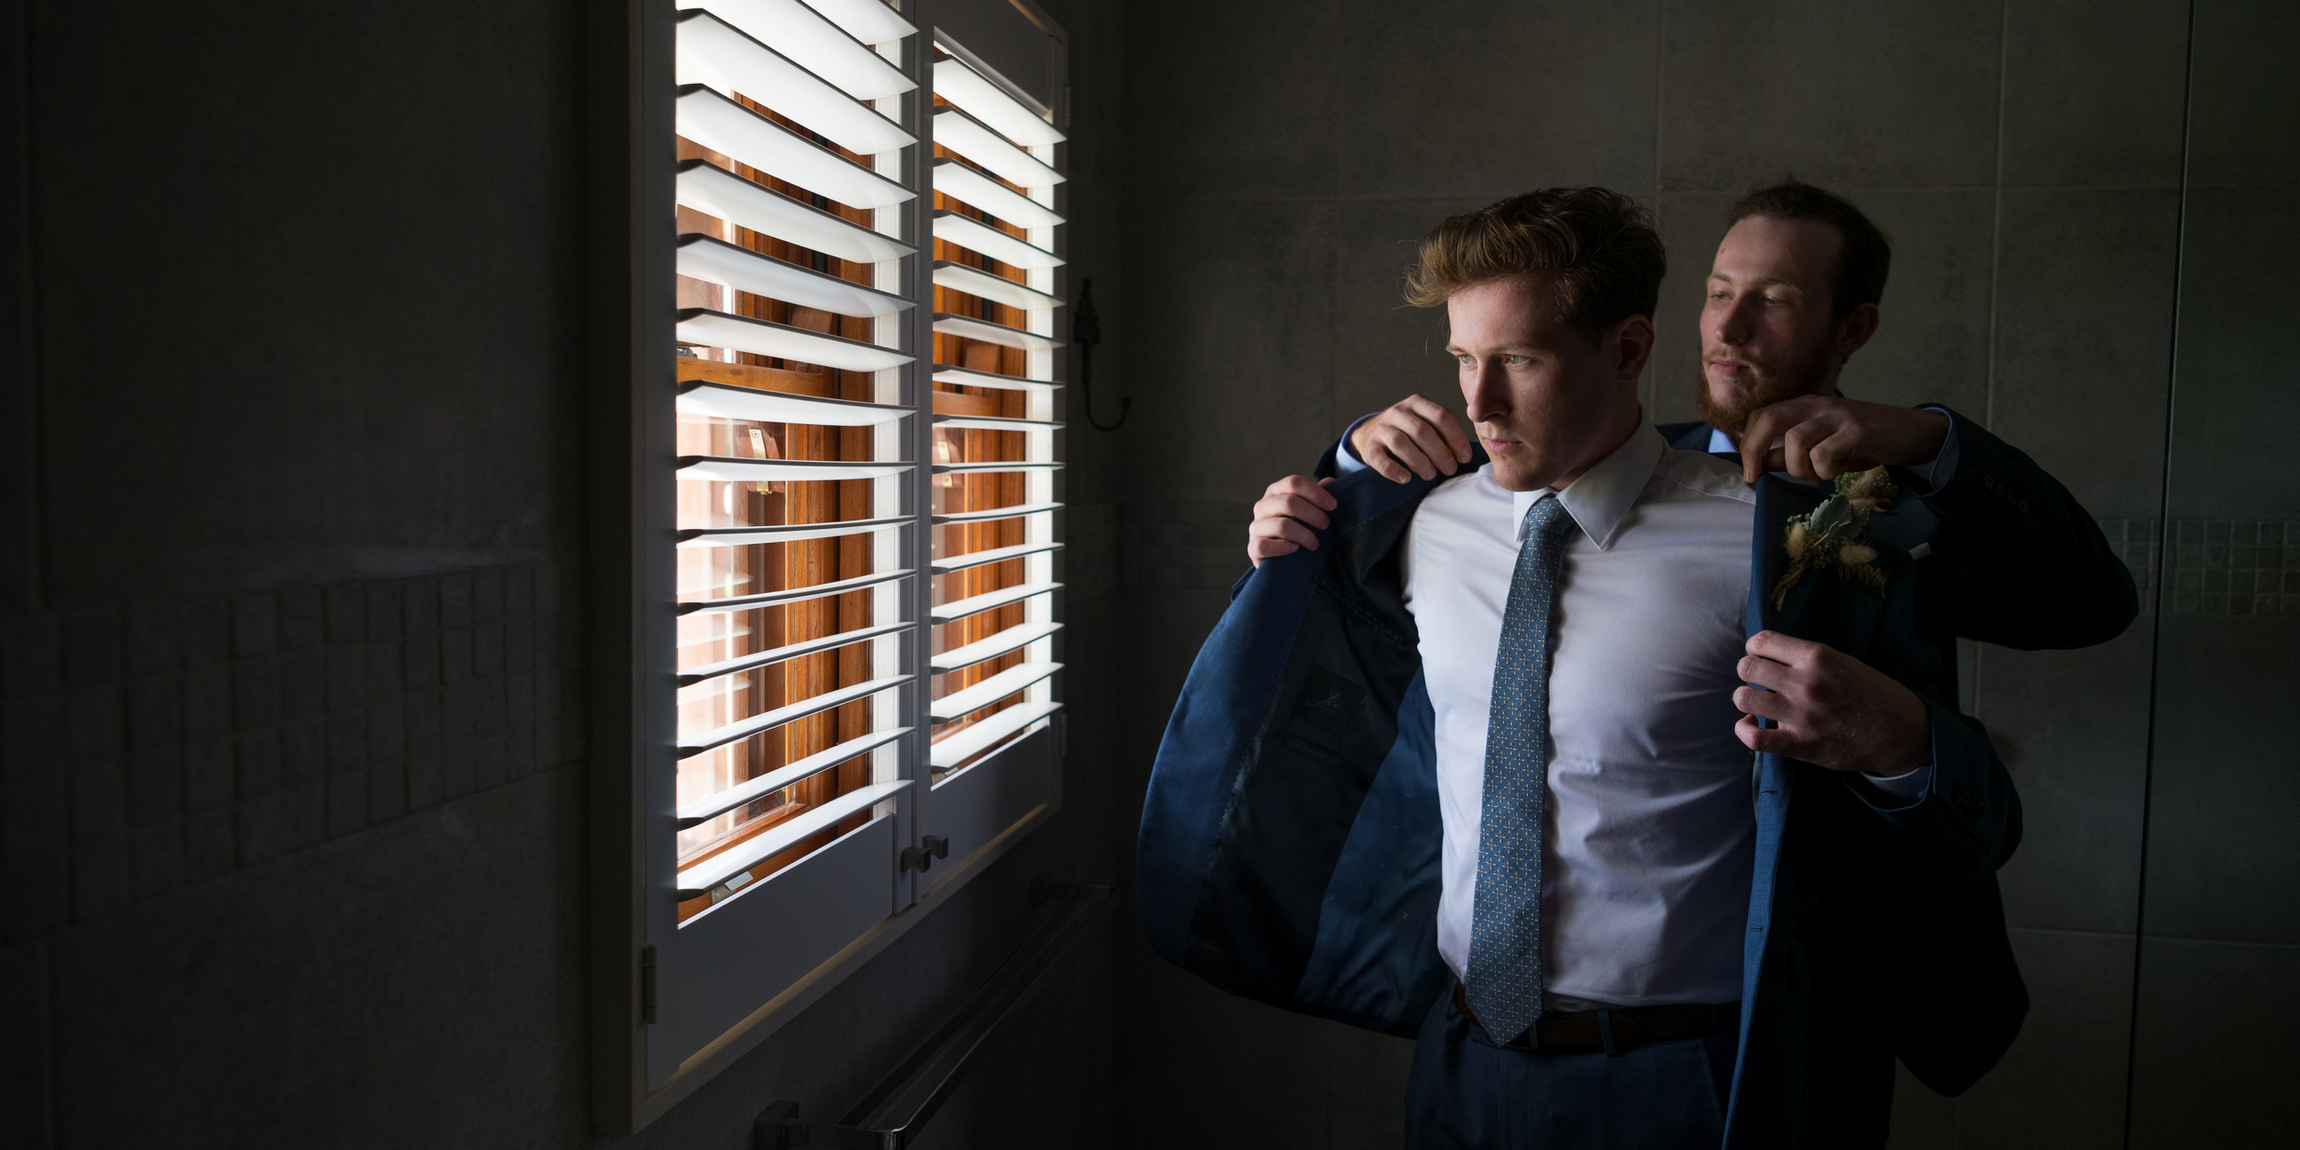 Wedding getting ready photo of groom